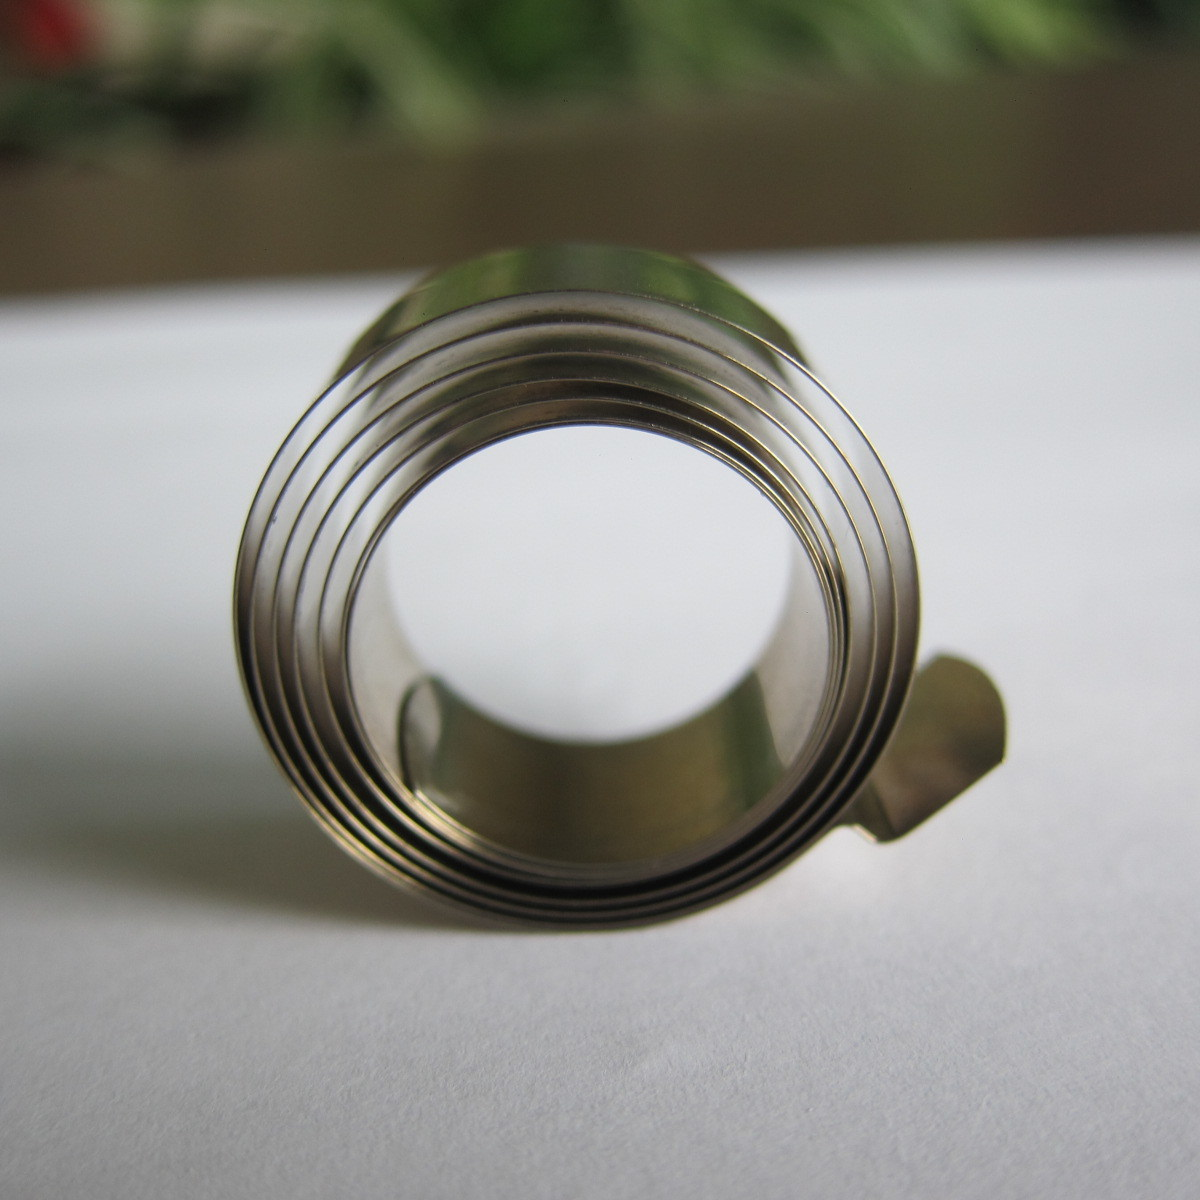 Spiral Power Spring Variable Force for Display Shelf Pusher